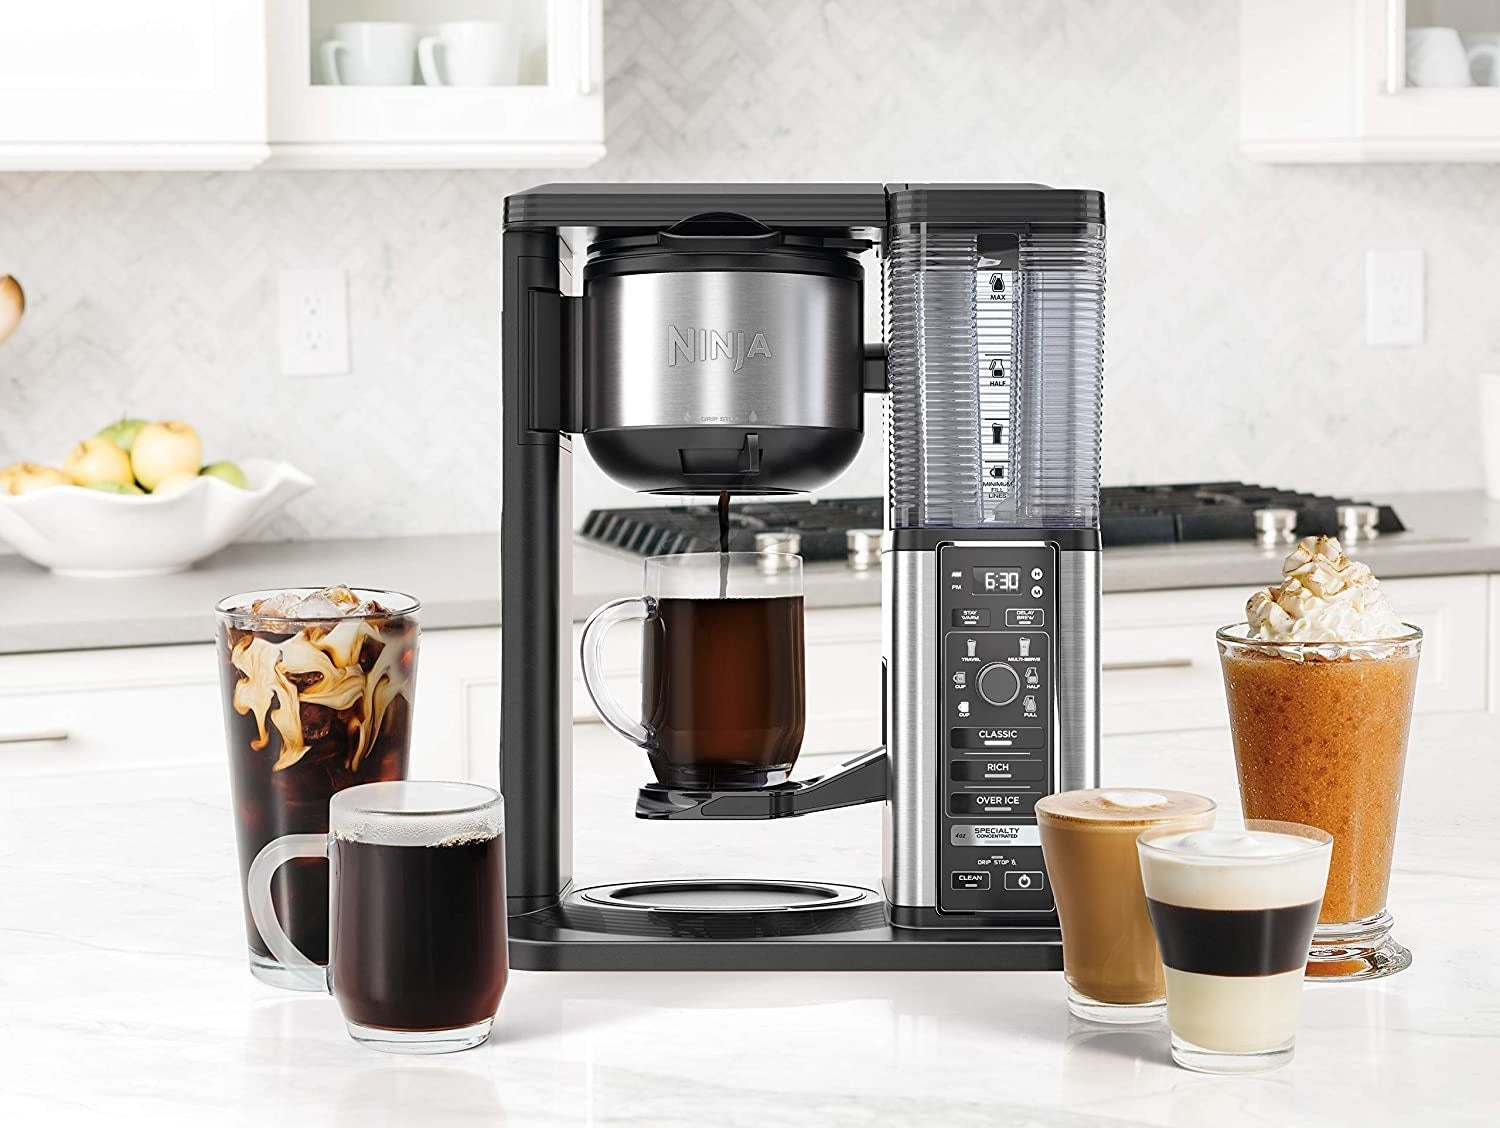 A ninja coffee maker surrounded by various types of coffee drinks